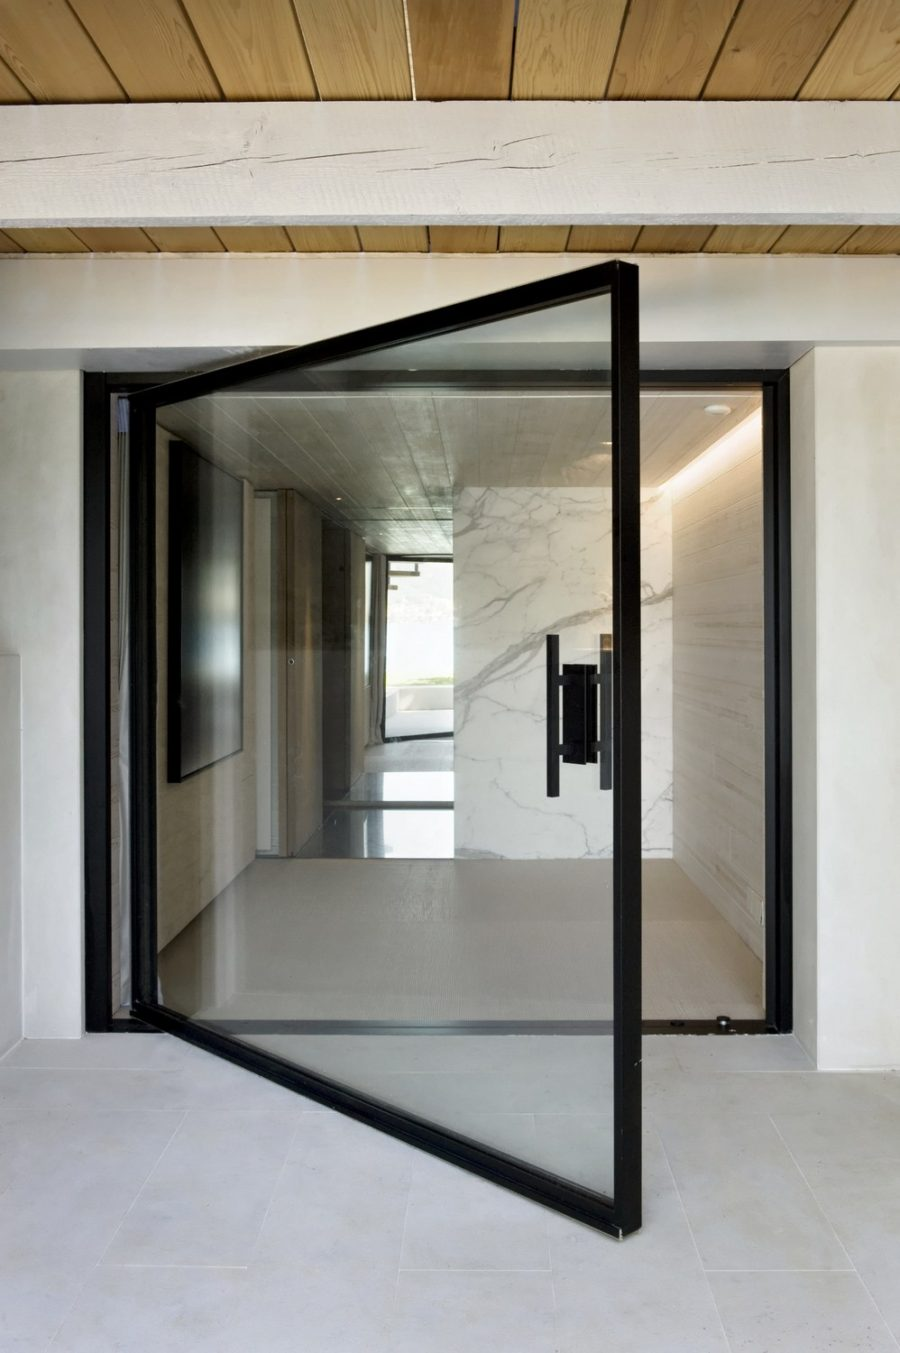 Pivoting glass door